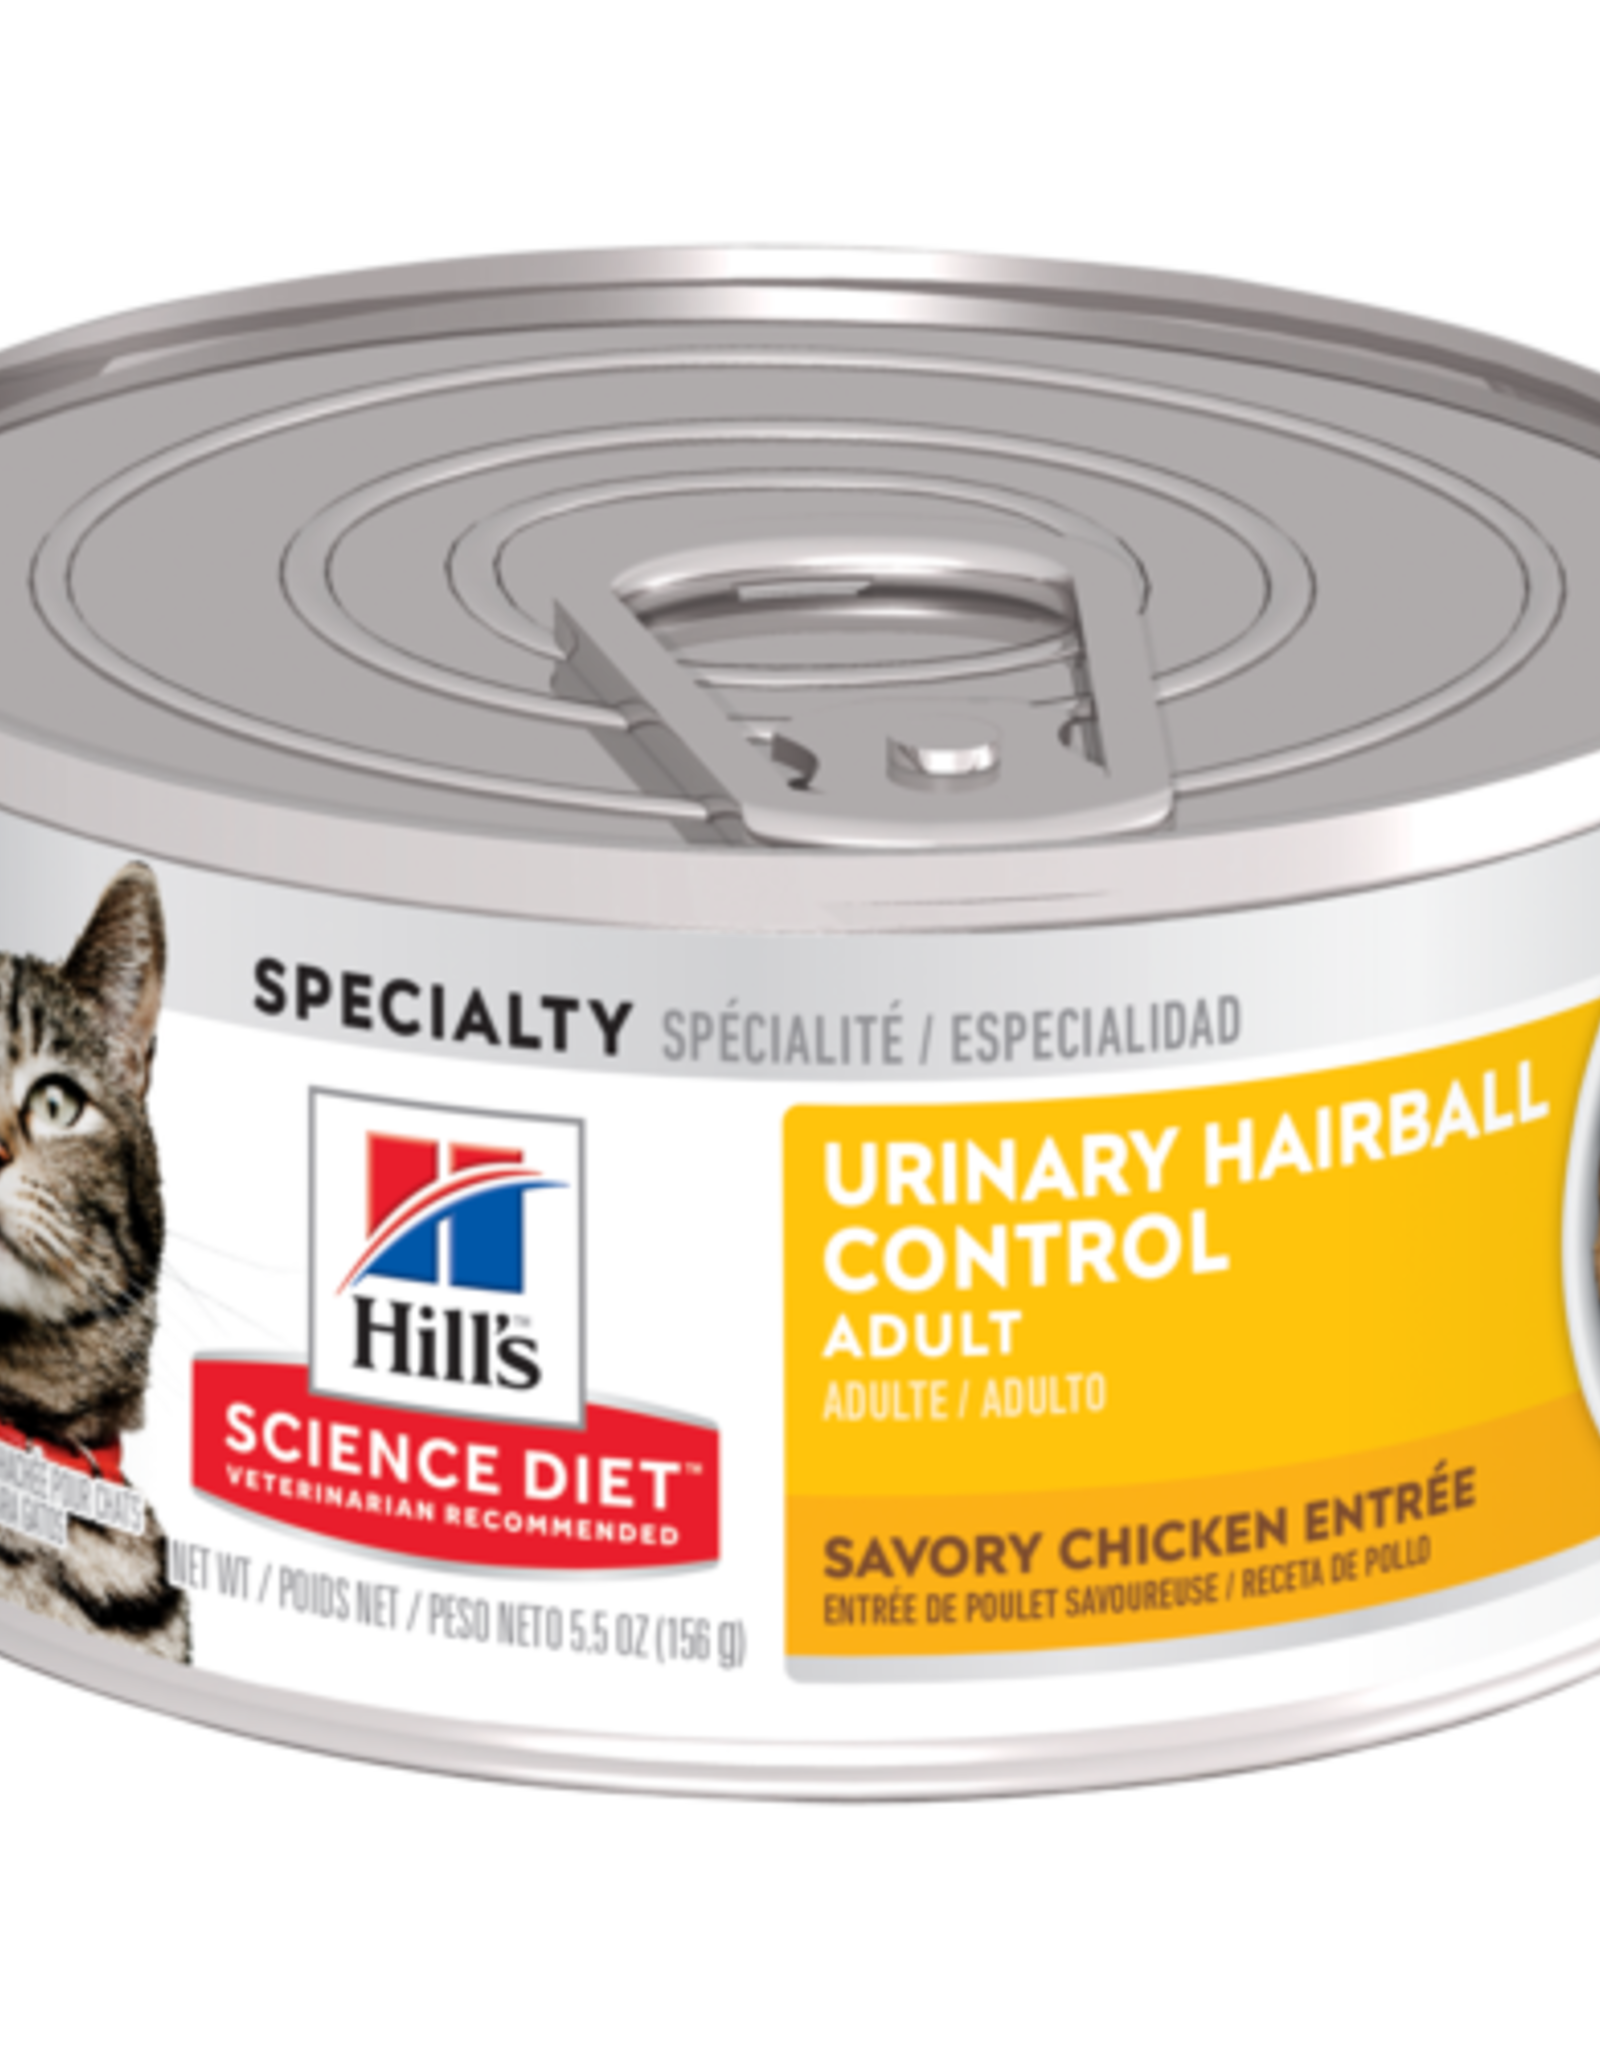 SCIENCE DIET HILL'S SCIENCE DIET FELINE ADULT URINARY HAIRBALL CONTROL 2.9OZ CASE OF 24